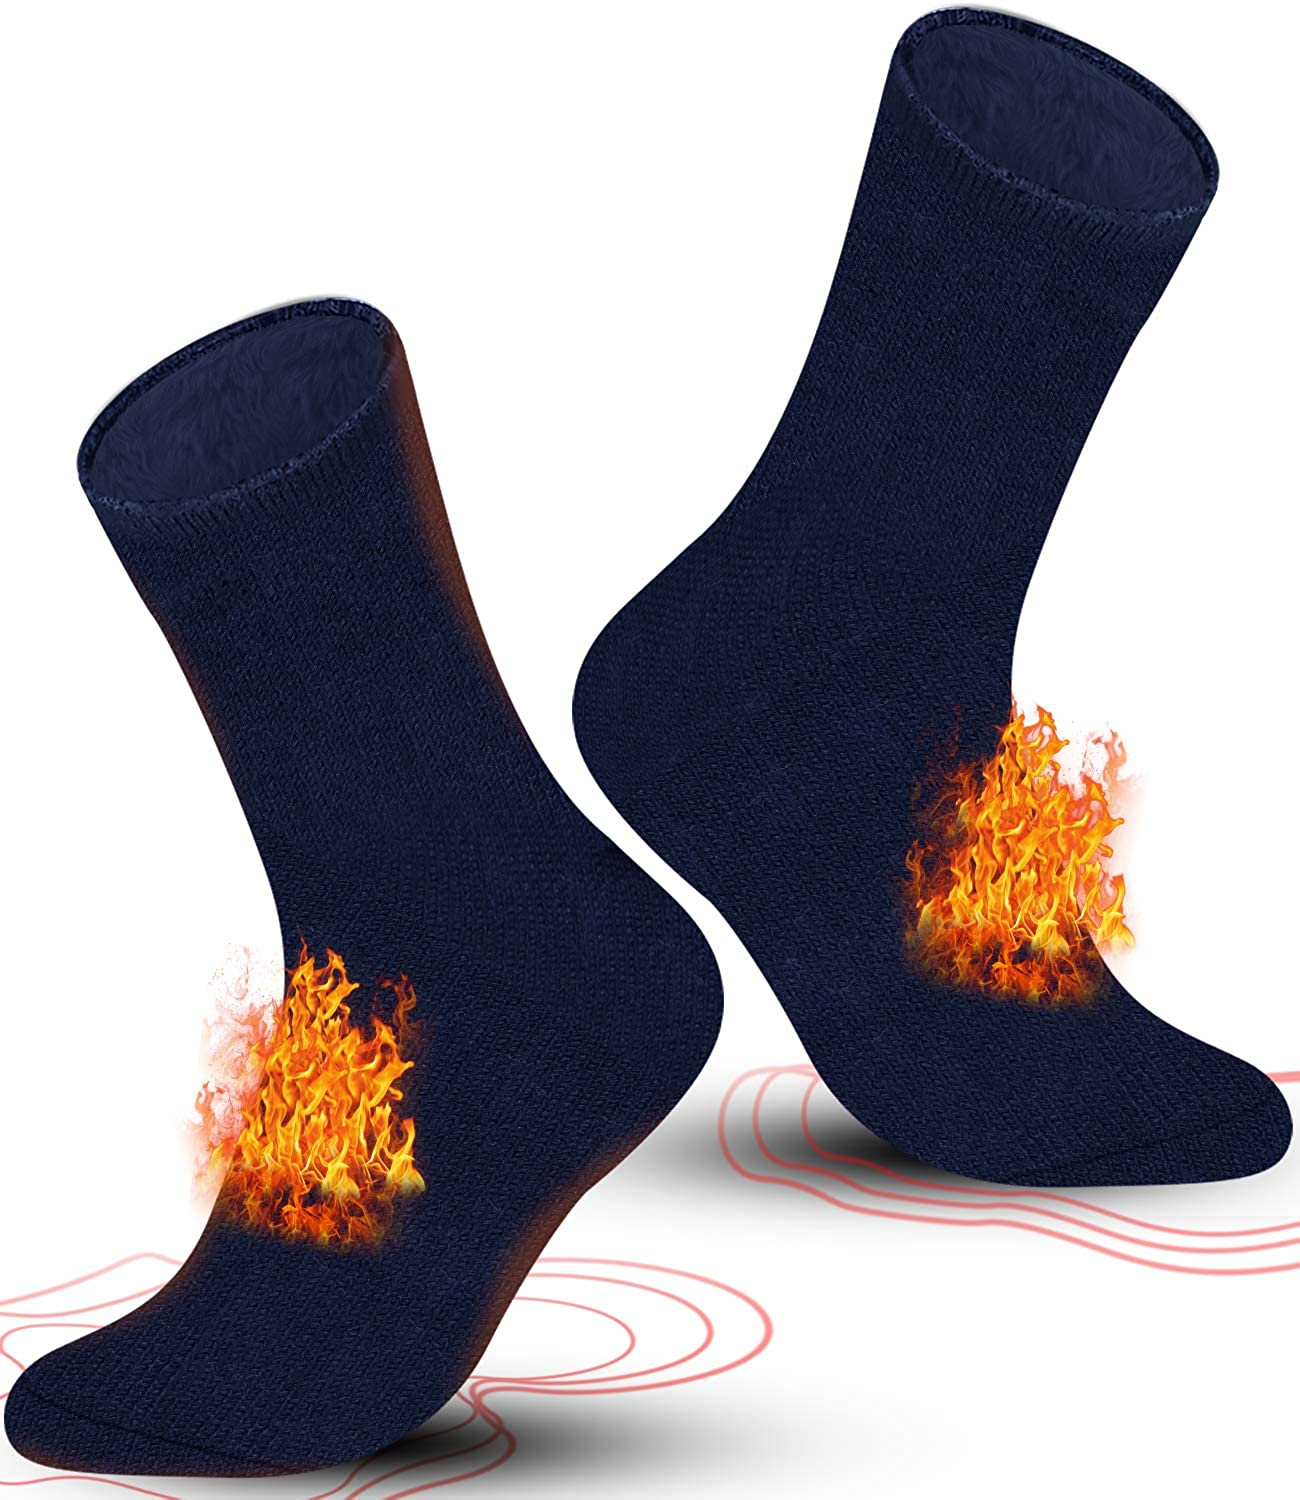 Fuzzy Warm Socks for Women, 2 Pairs of Mens Heated Socks, Winter Insulated Boot Thermal Socks for Skiing, Hiking